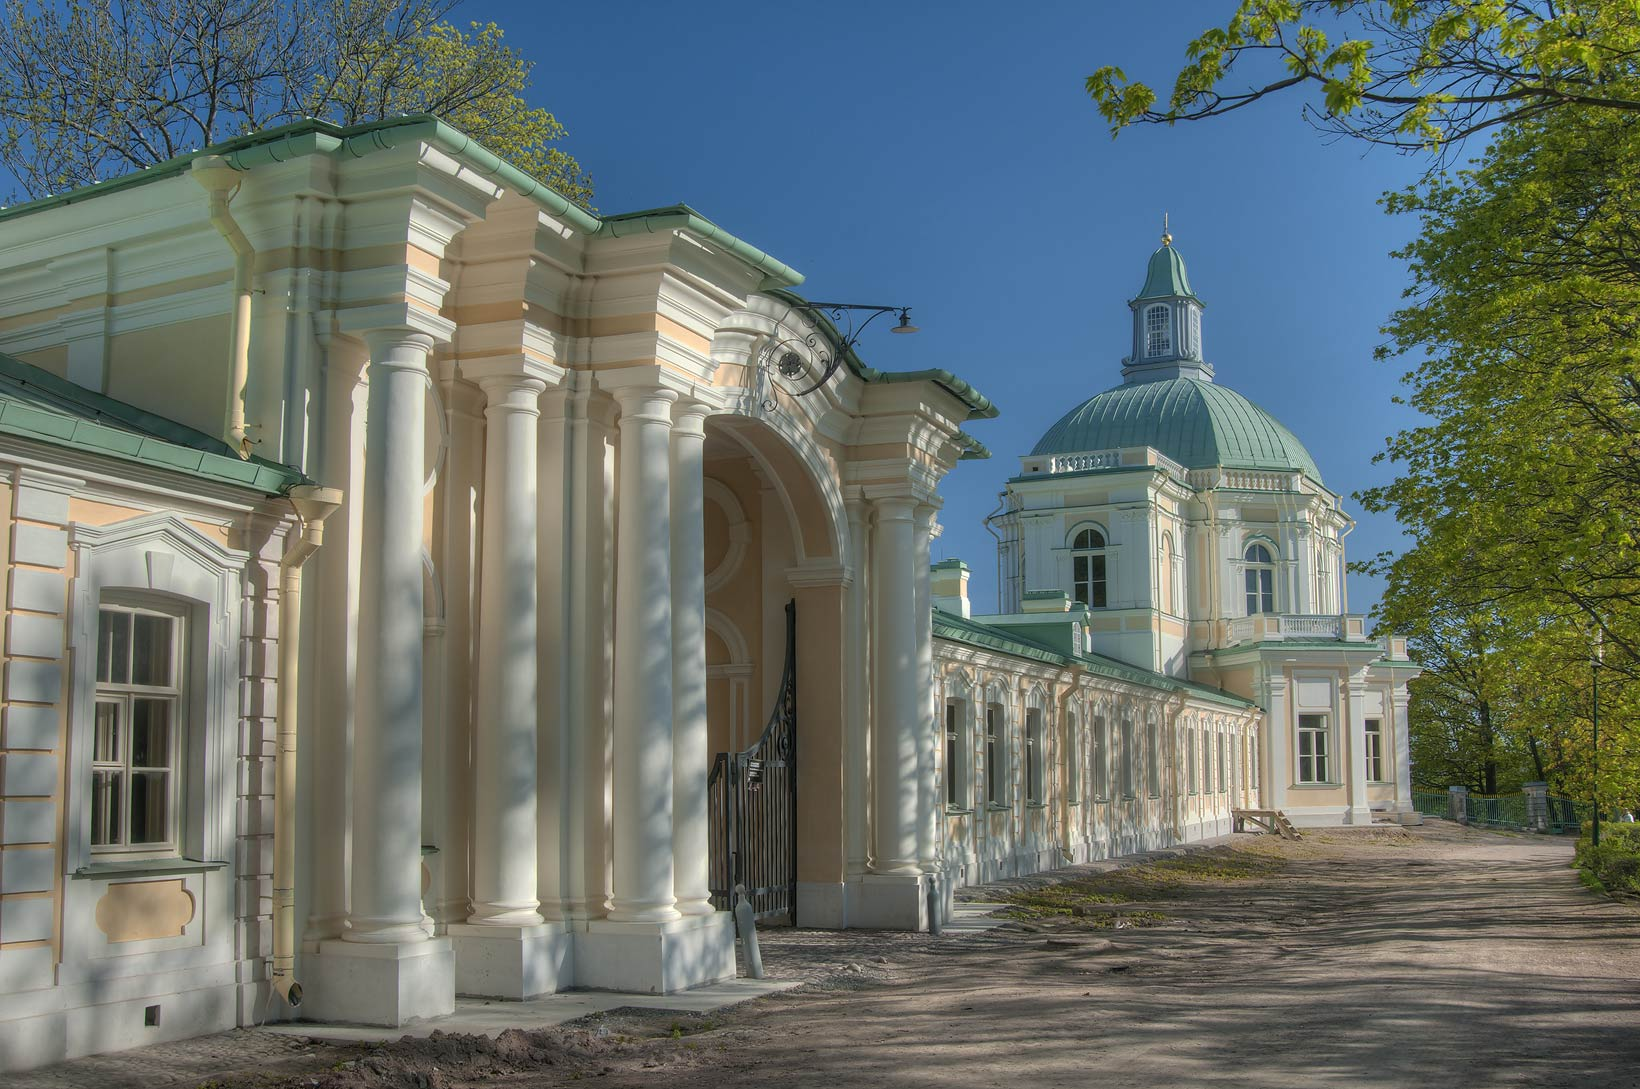 East wing of Menshikov Palace in Lomonosov (Oranienbaum). West from St.Petersburg, Russia